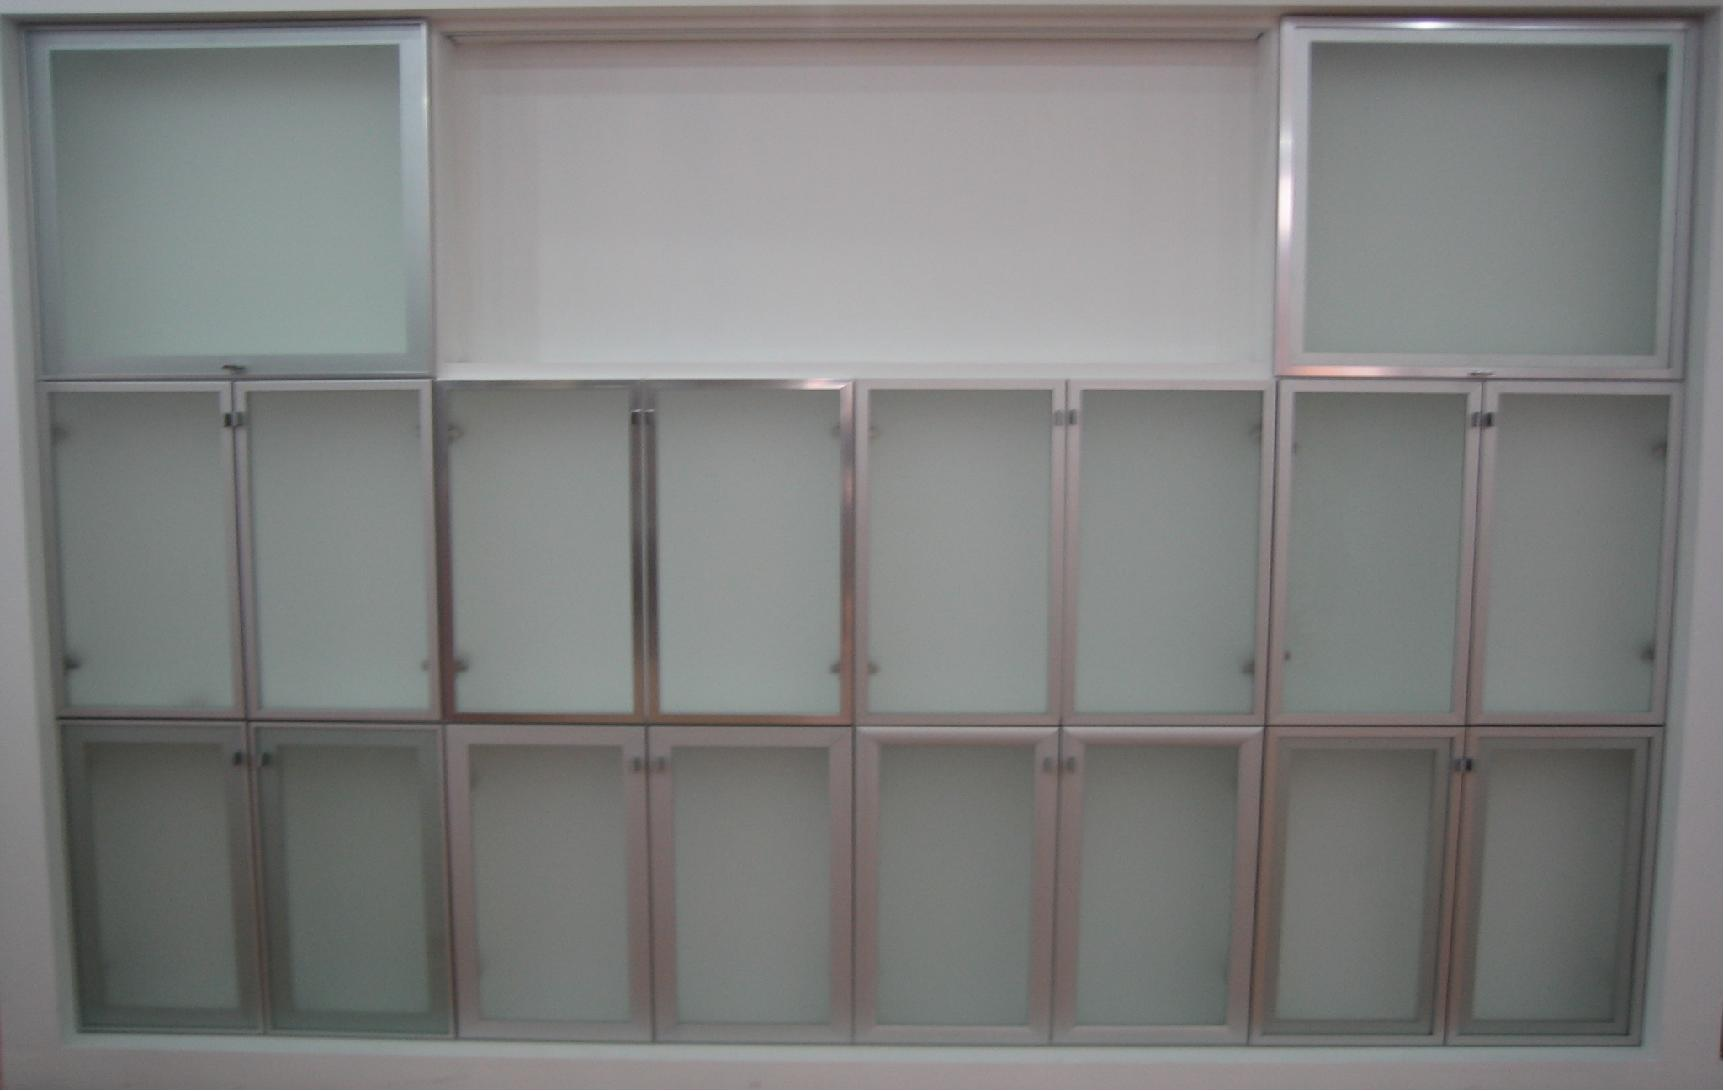 Aluminum frame aluminum frame kitchen cabinet doors for Kitchen cabinets aluminium